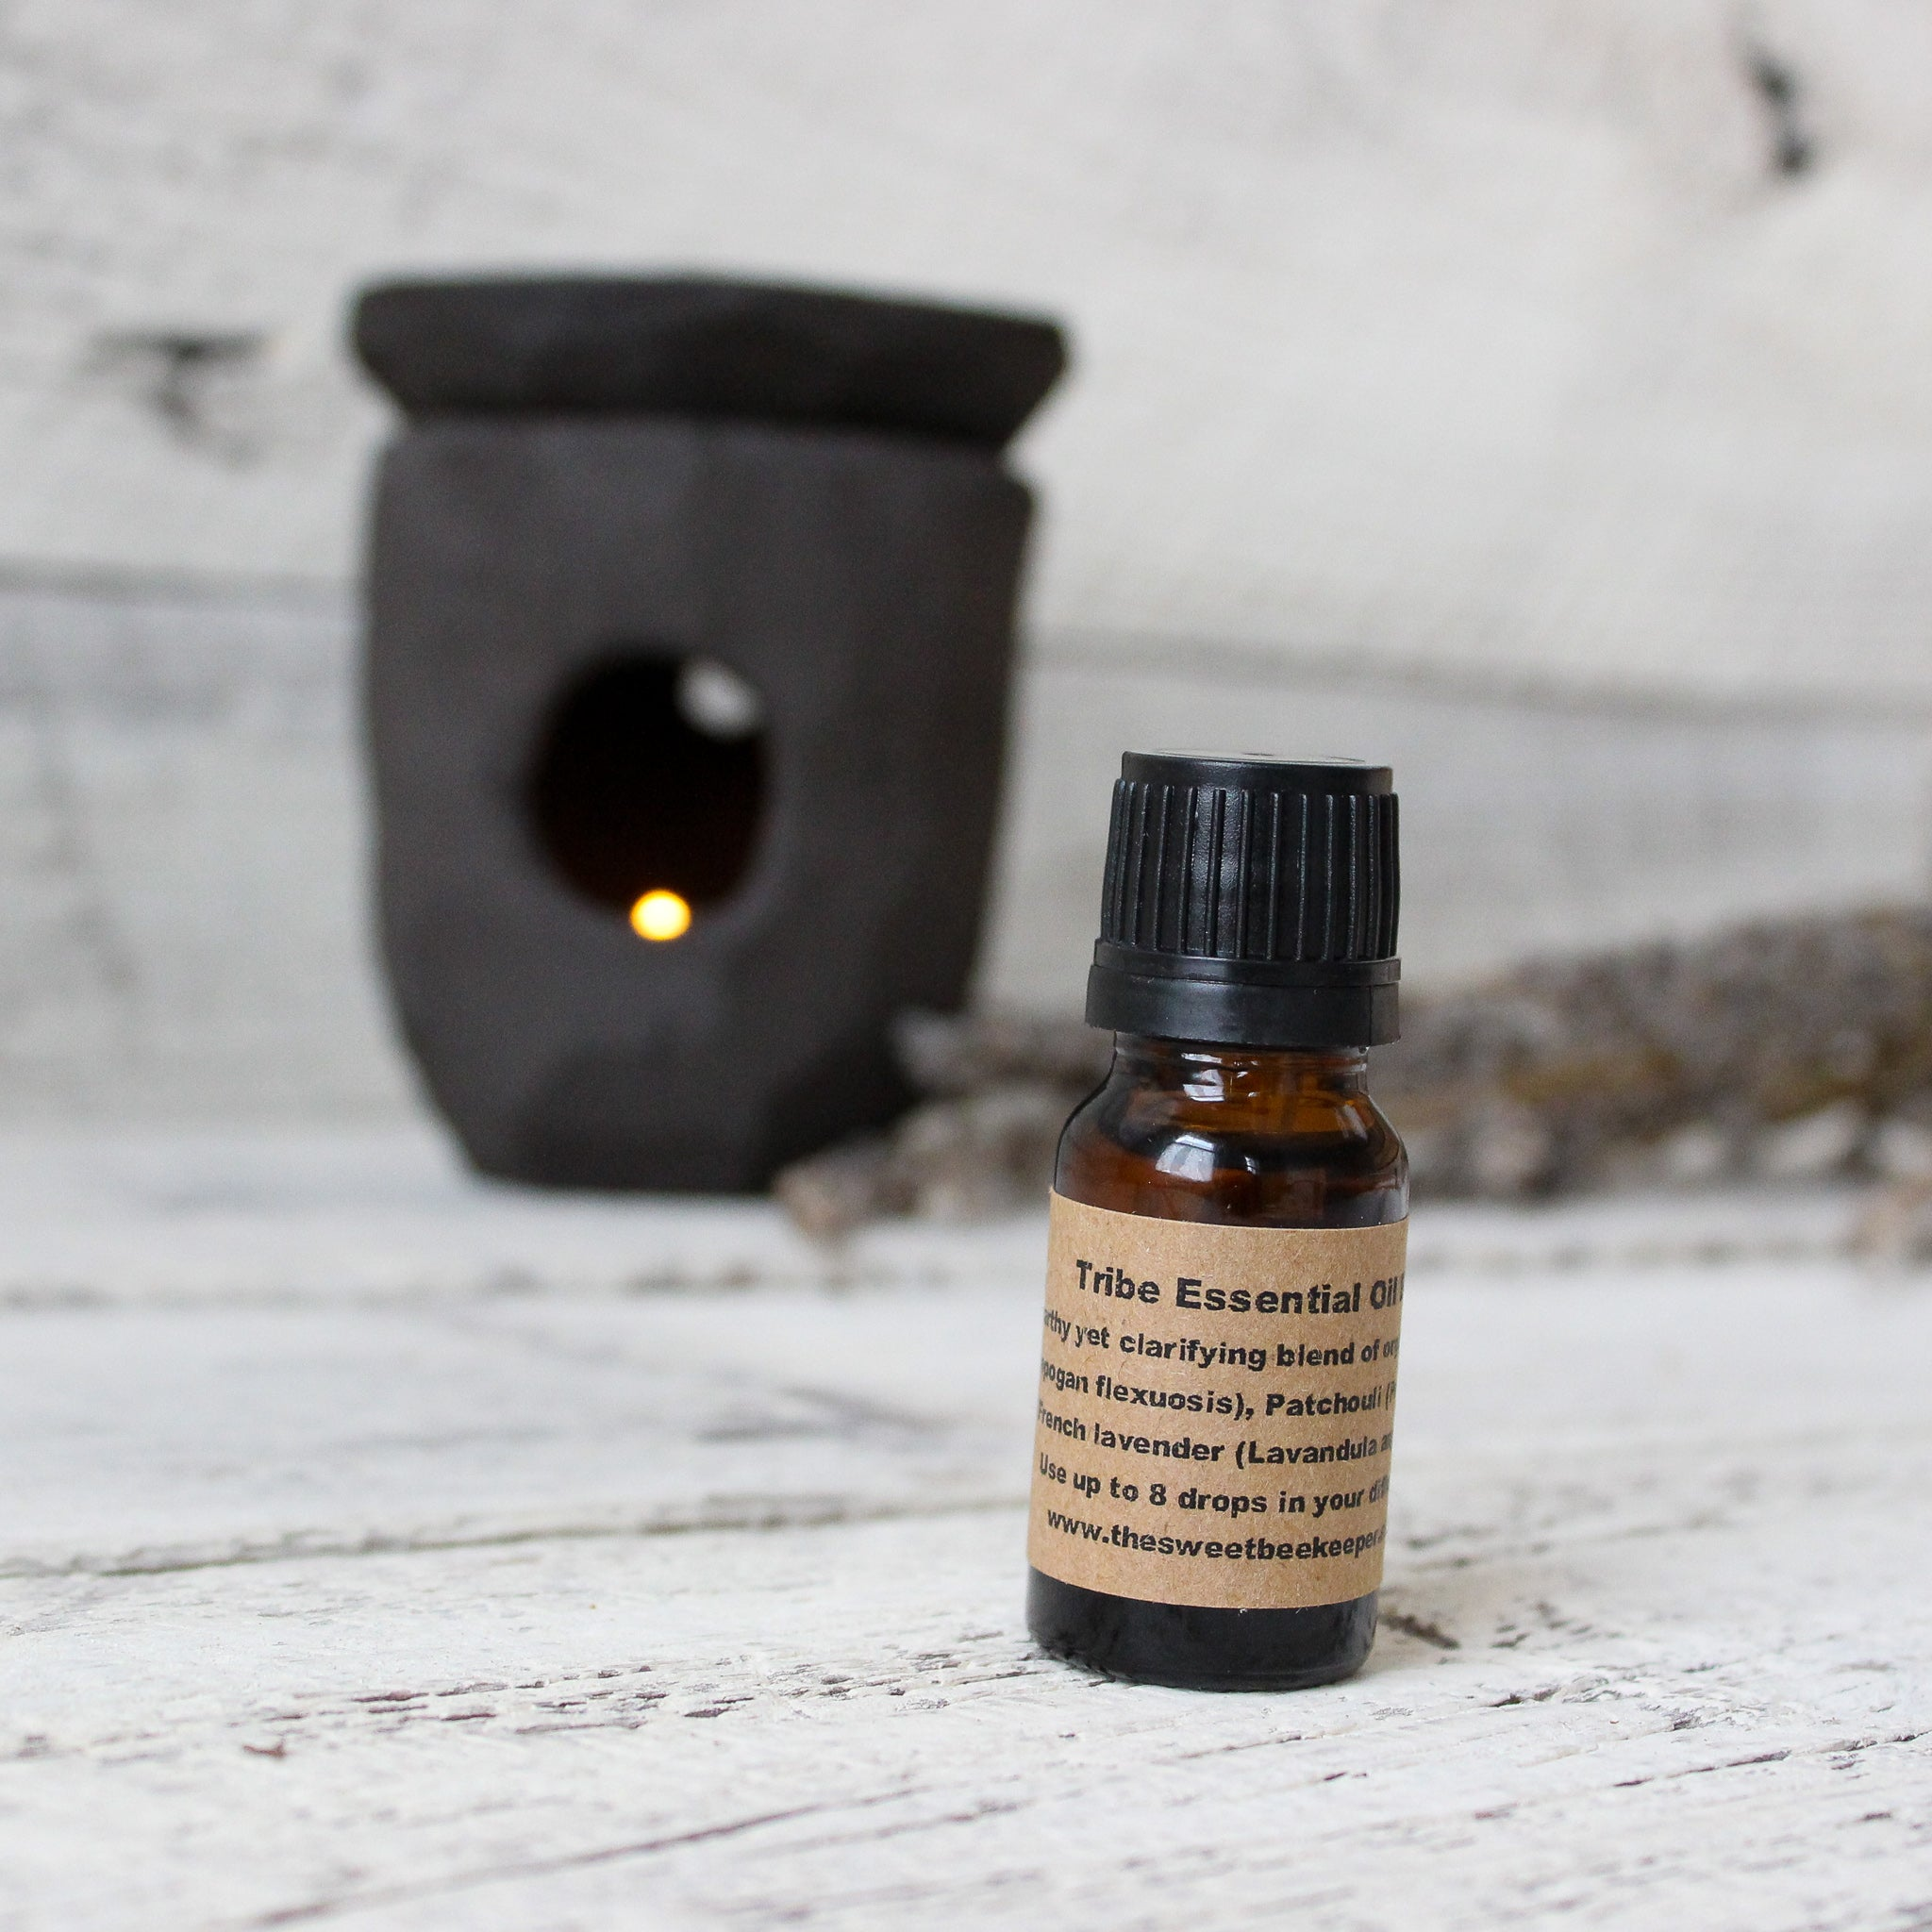 Tribe Essential Oil Blend